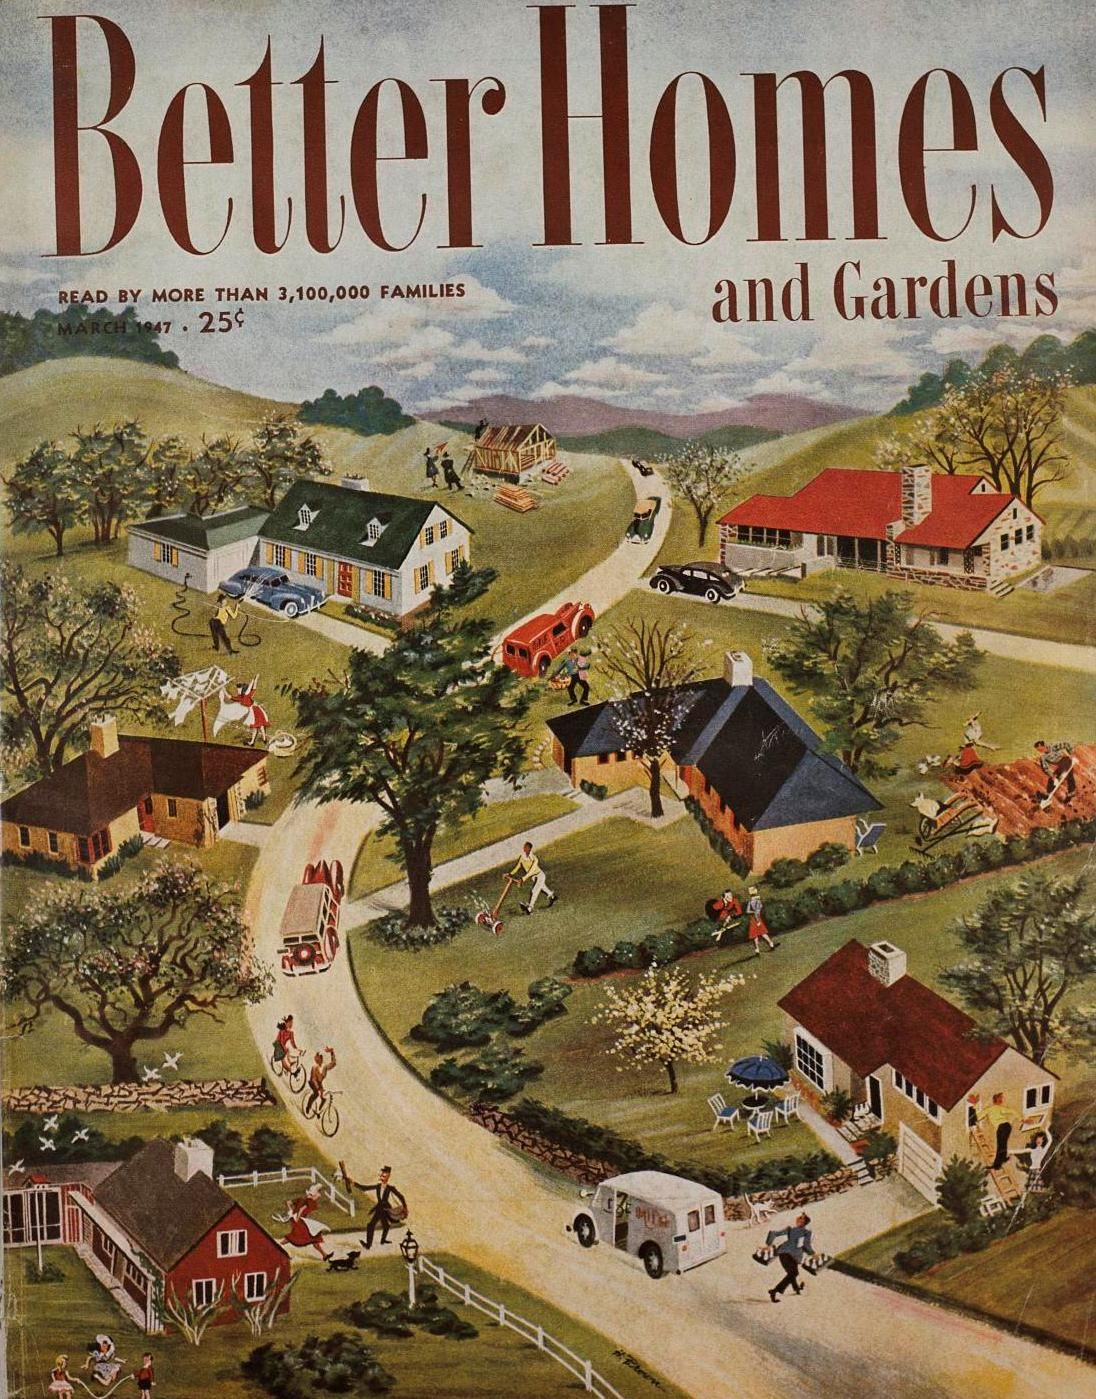 Vintage Bhg Covers March1947 A Special Memory For Me